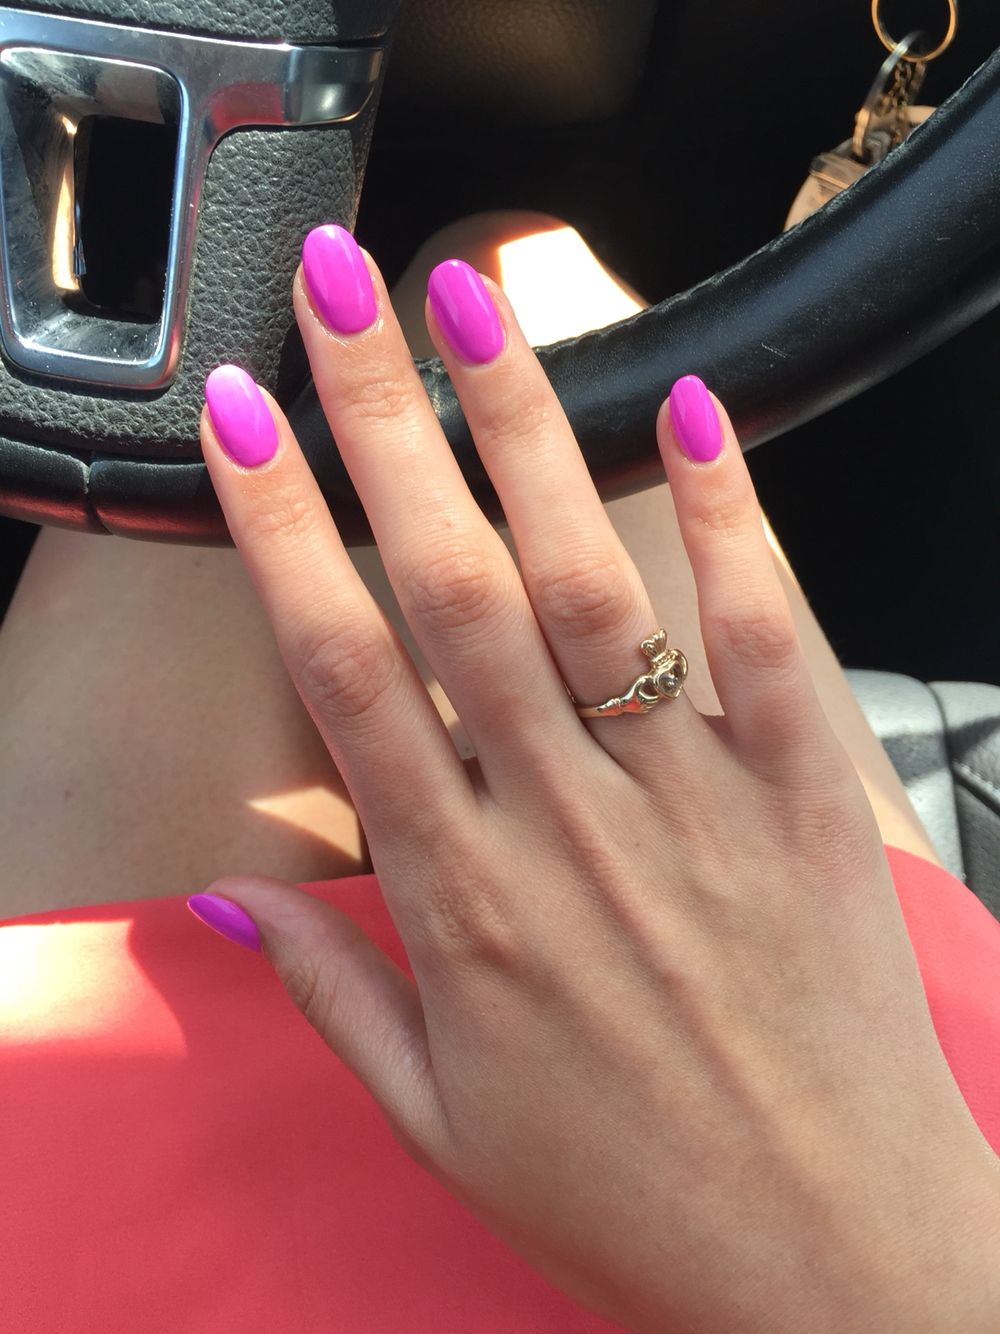 Hot pink round acrylic nails | Nails | Pinterest | Rounded acrylic ...